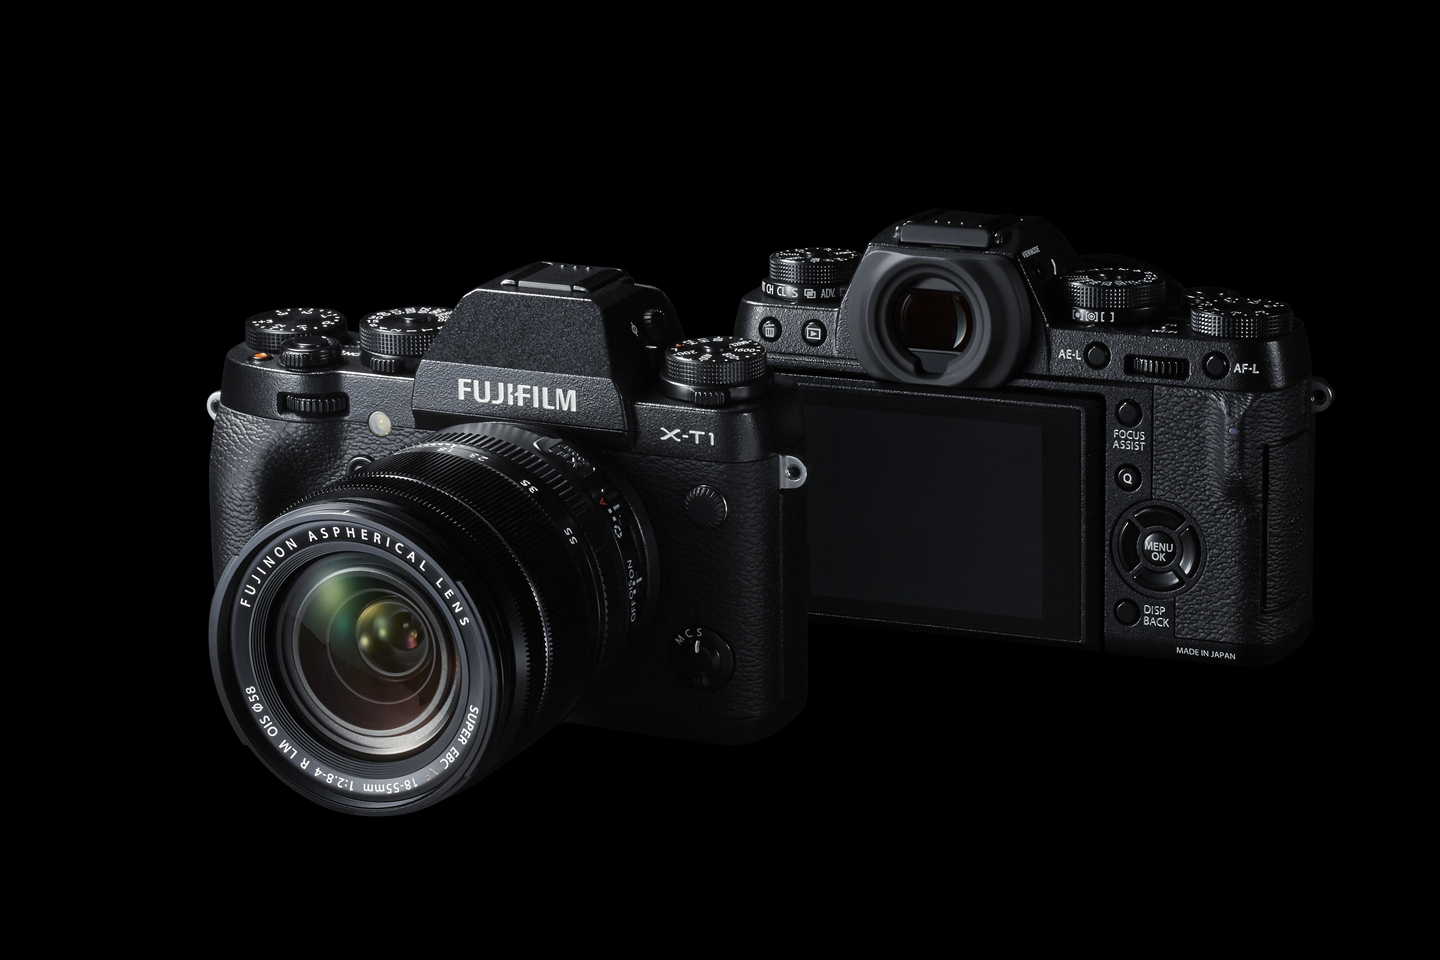 Fujifilm X-T1 - The X-T1 was introduced in 2014 and was Fujifilm's first DSLR styled mirrrorless body. The magnesium body is sealed for weather-resistance against water and dust and is also freezeproof down to -10 degrees C (14 degrees F). The top plate features a wealth of manual controls with dials for exposure compensation, shutter speed and ISO and sub-dials for metering and drive modes. The electronic viewfinder is a large, bright, high resolution OLED unit that offers a 100% view of your scene. The X-T1 uses Fujifilm's 16.3 MP X-trans sensorwhich is unique to the X-series cameras.The X-T1 has since been followed by the X-T2.